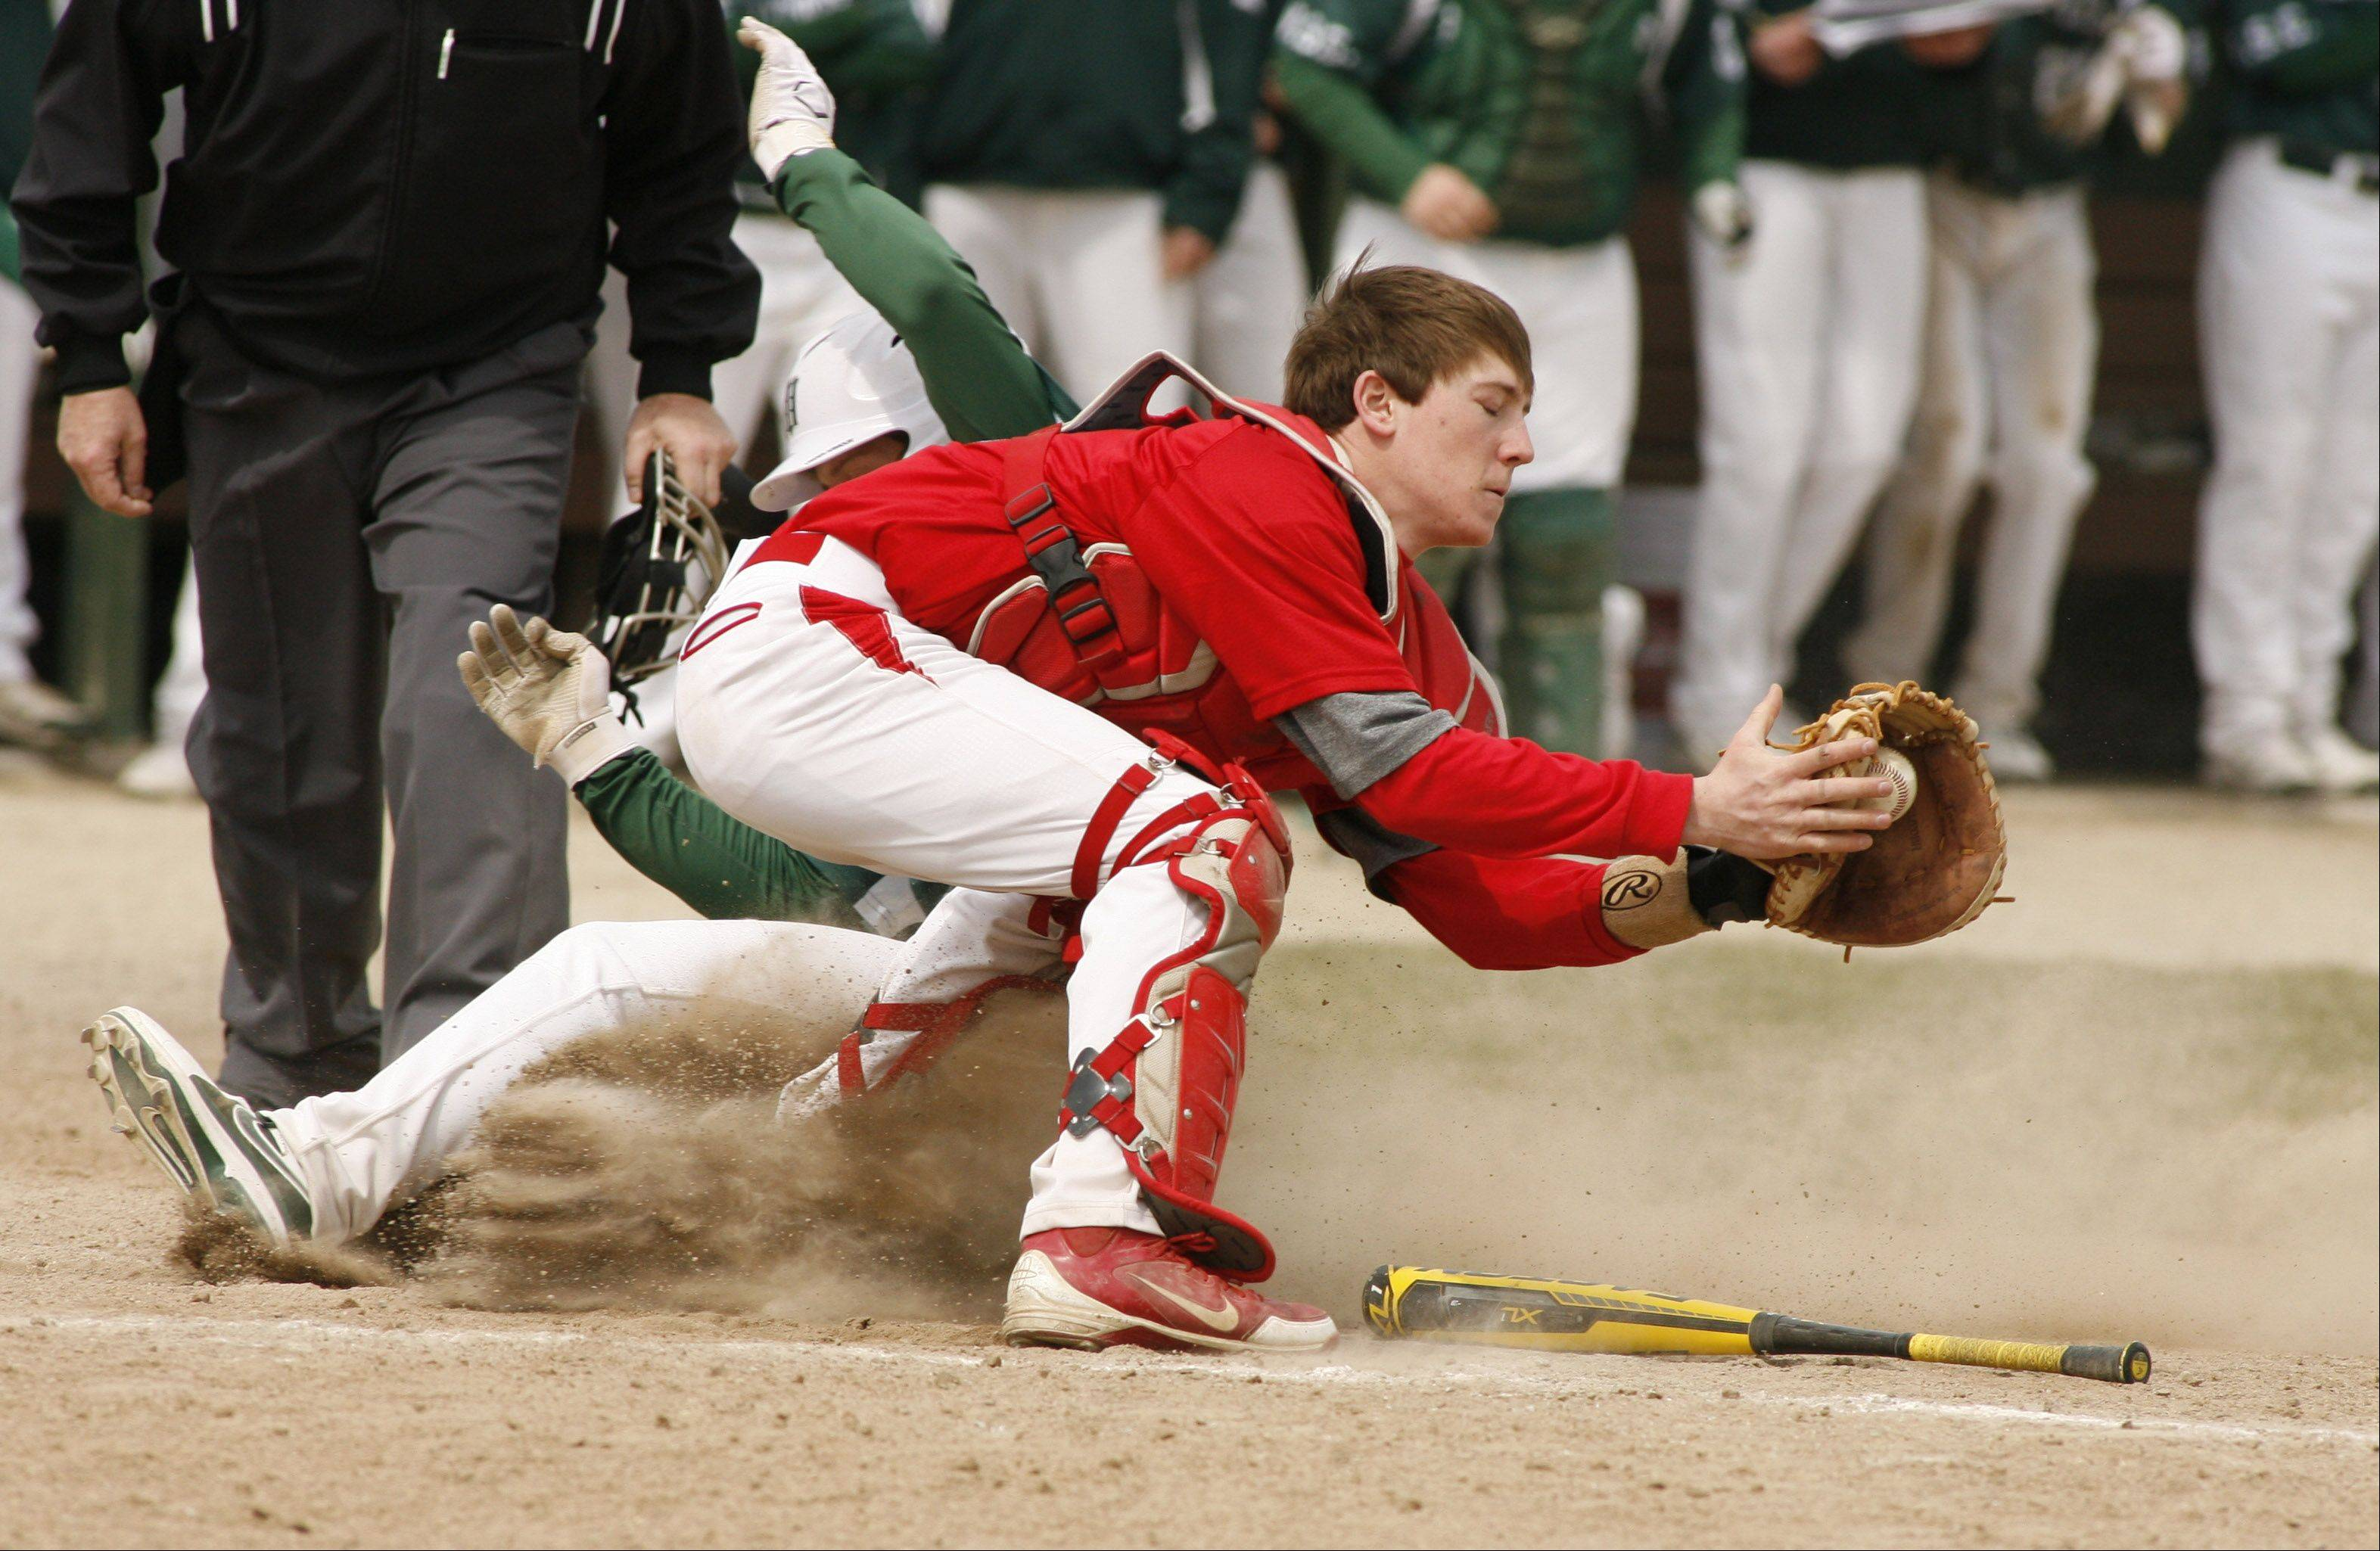 The Hilltoppers' Spencer Refer slides safely into home past catcher Tyler Ward to score the winning run, during Glenbard West's 6-5 win over Hinsdale Central.